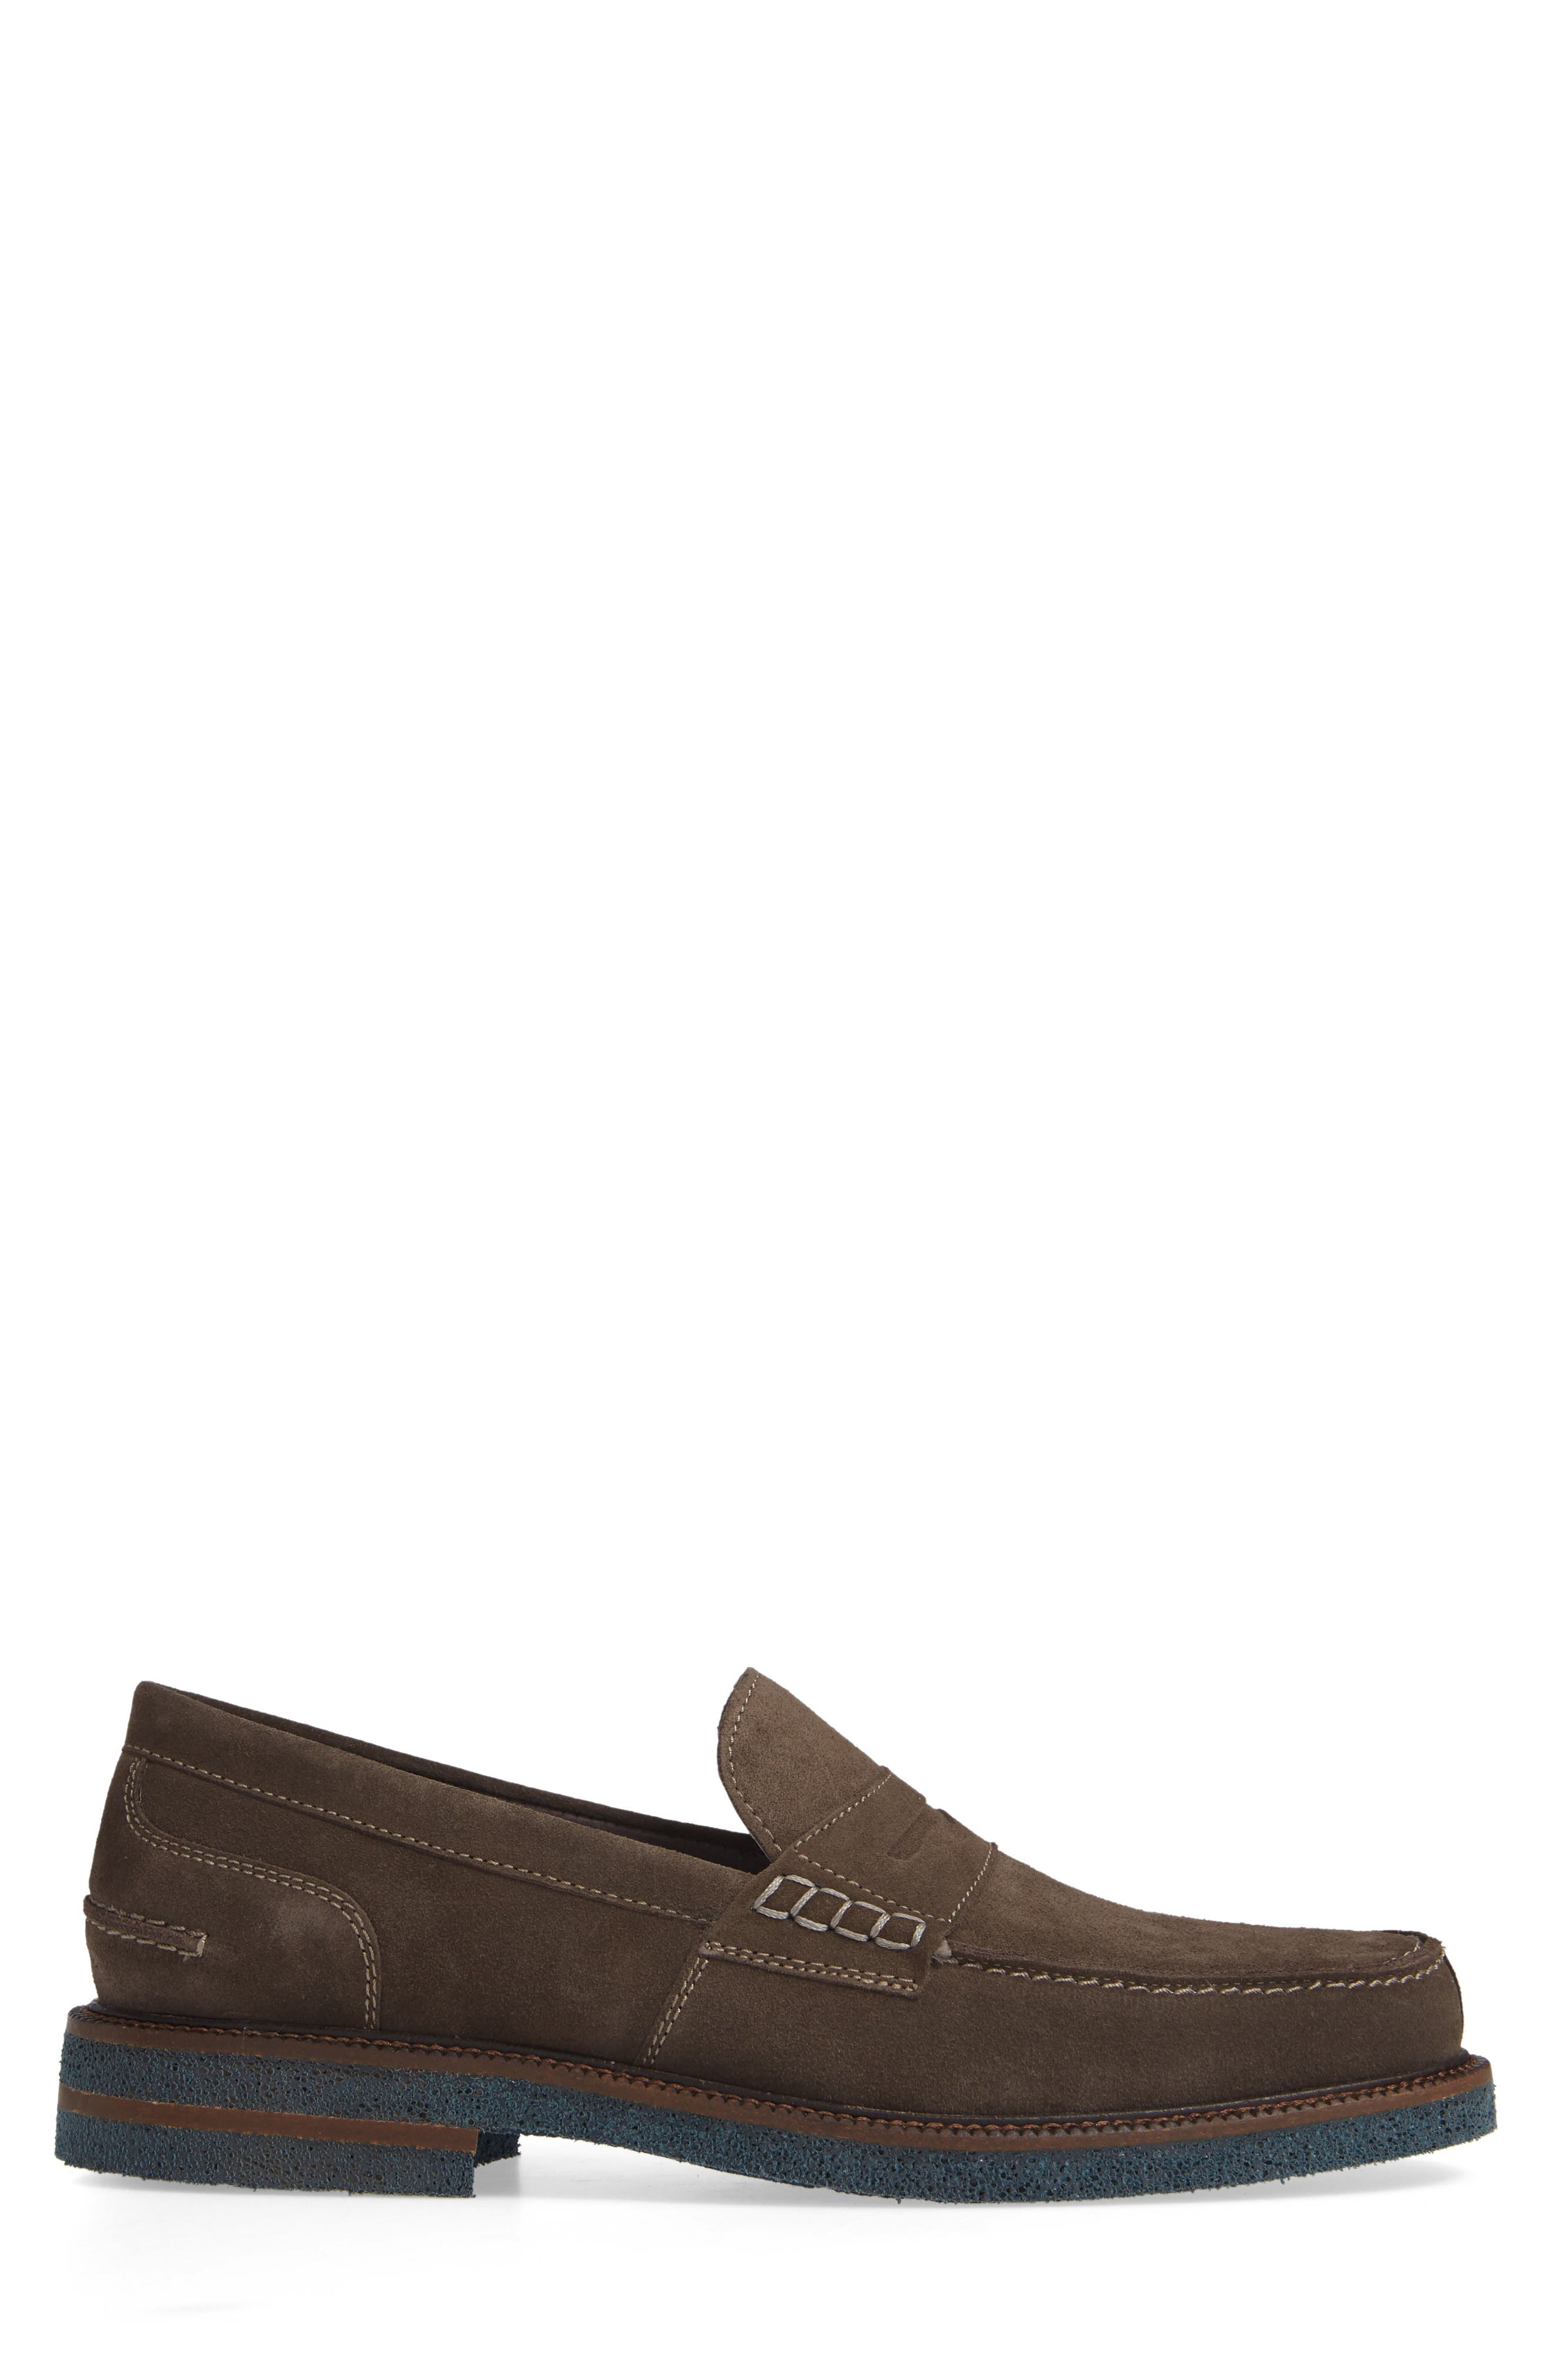 Landry Penny Loafer,                             Alternate thumbnail 3, color,                             GREY SUEDE